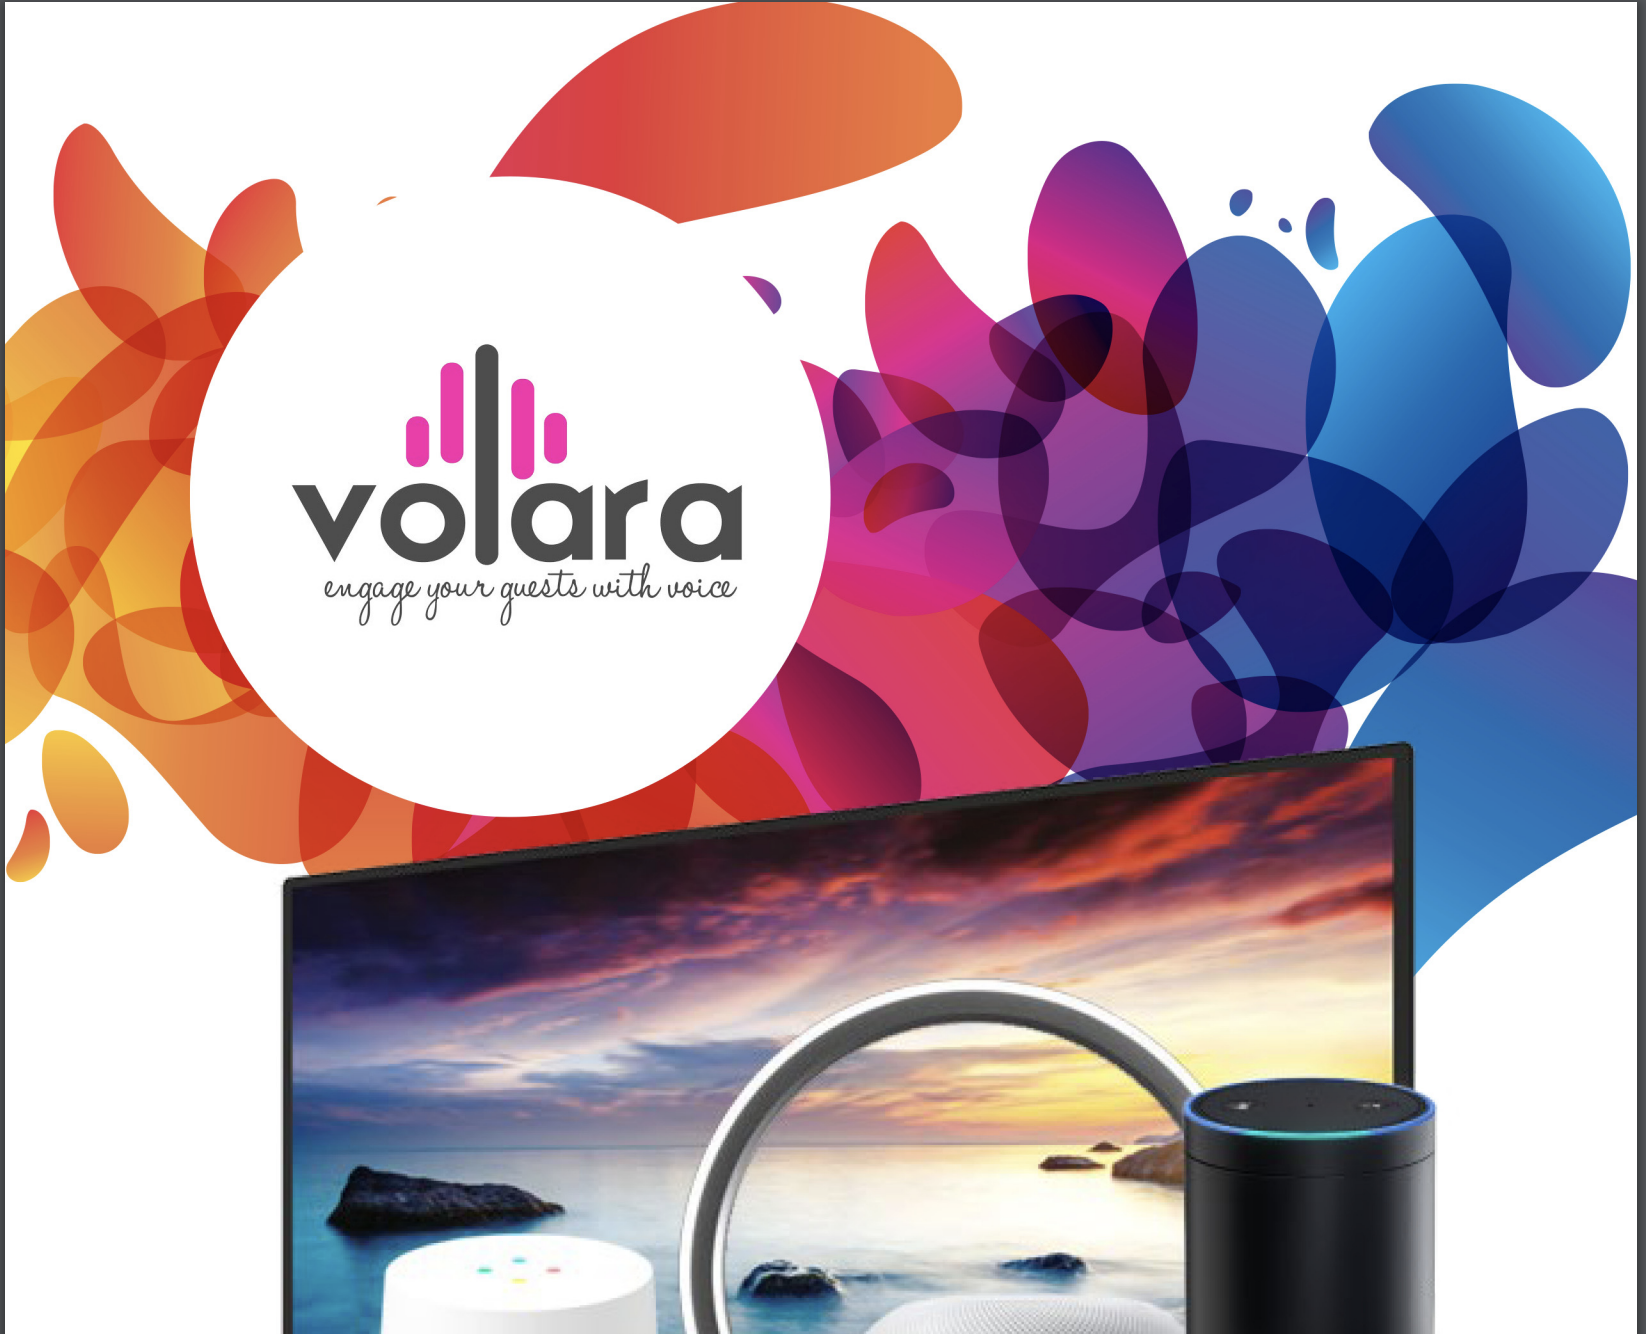 Volara: Engage your guest with voice